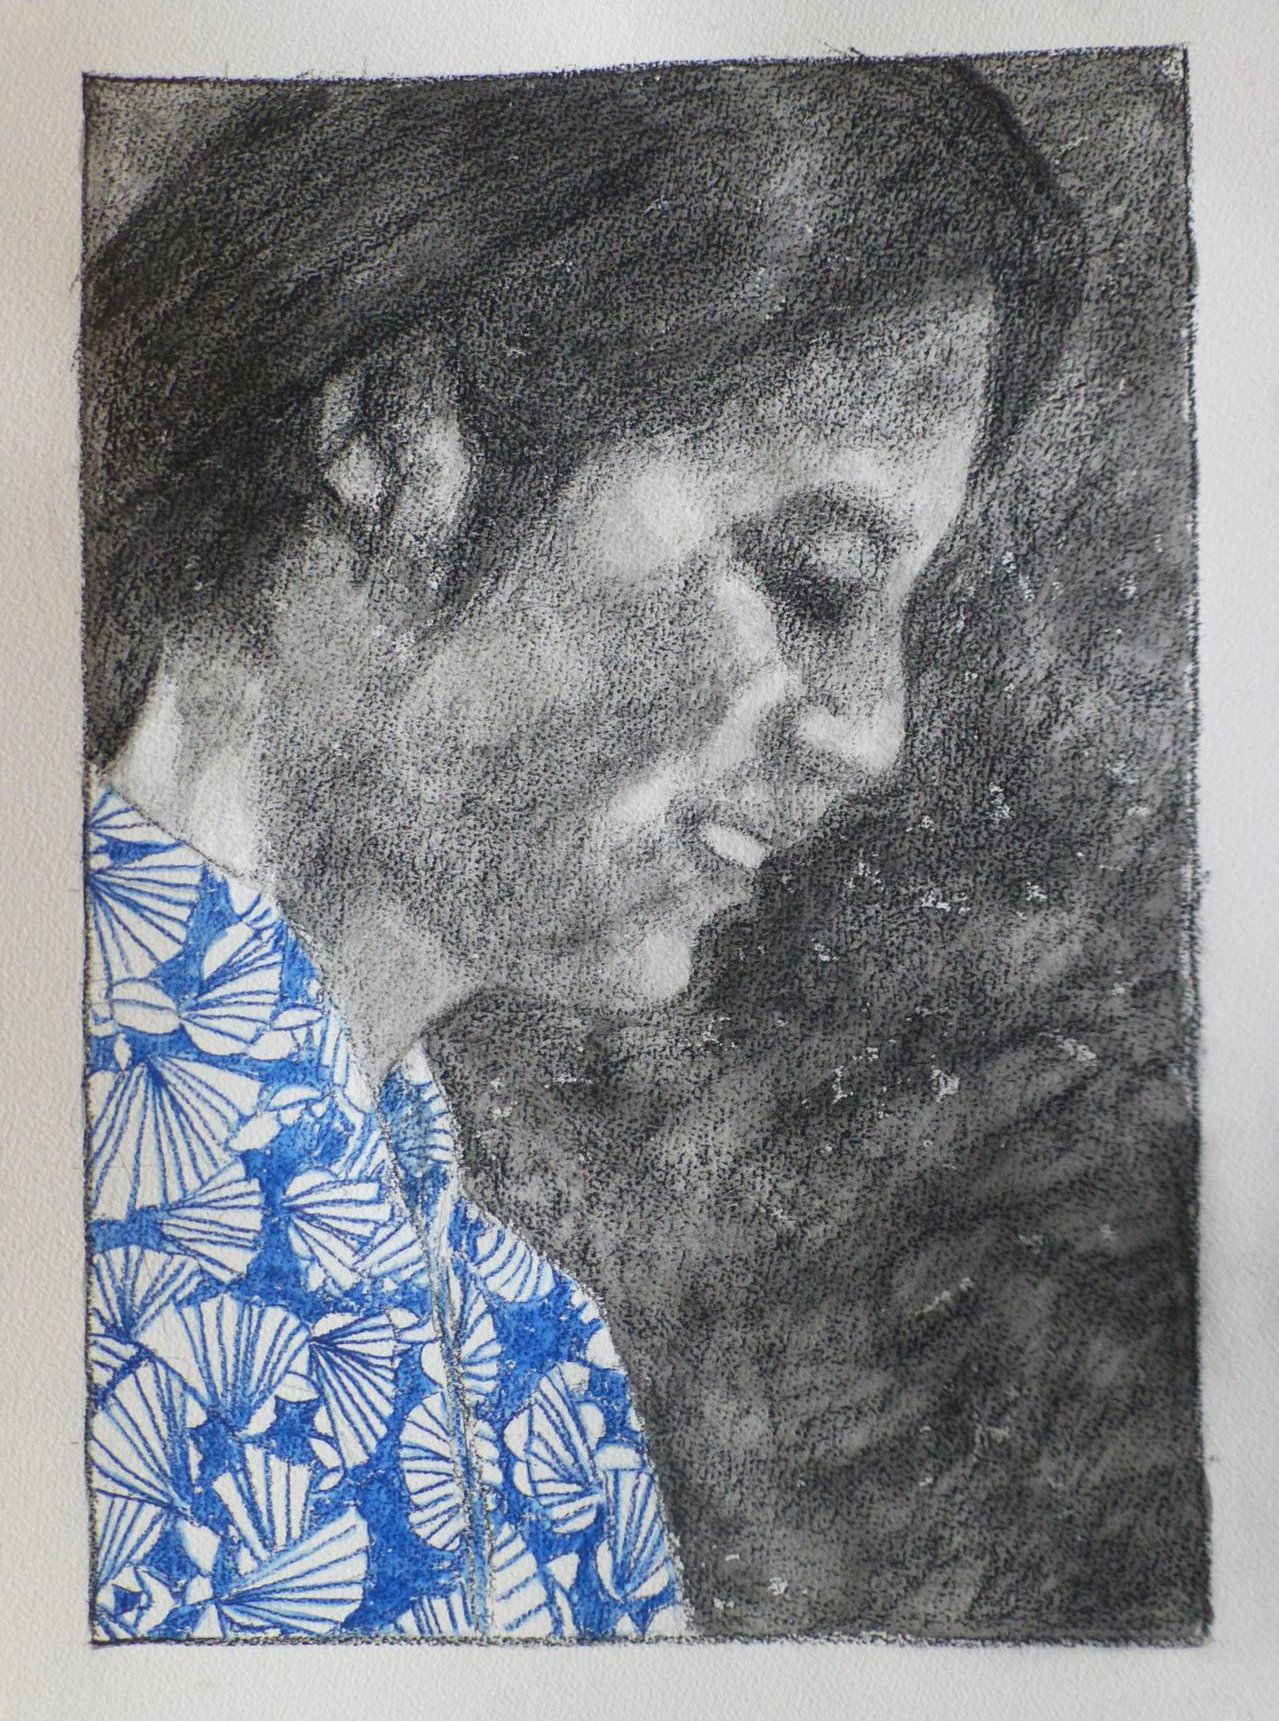 A Conté pencil portrait of a Japanese woman in profile, wearing a yukata with a stylised ginkho leaf pattern in blue. The scene is quite dark, the face has some highlights from an invisible light source placed in front and below the character. The background is a sketchy rendering of vegetation.